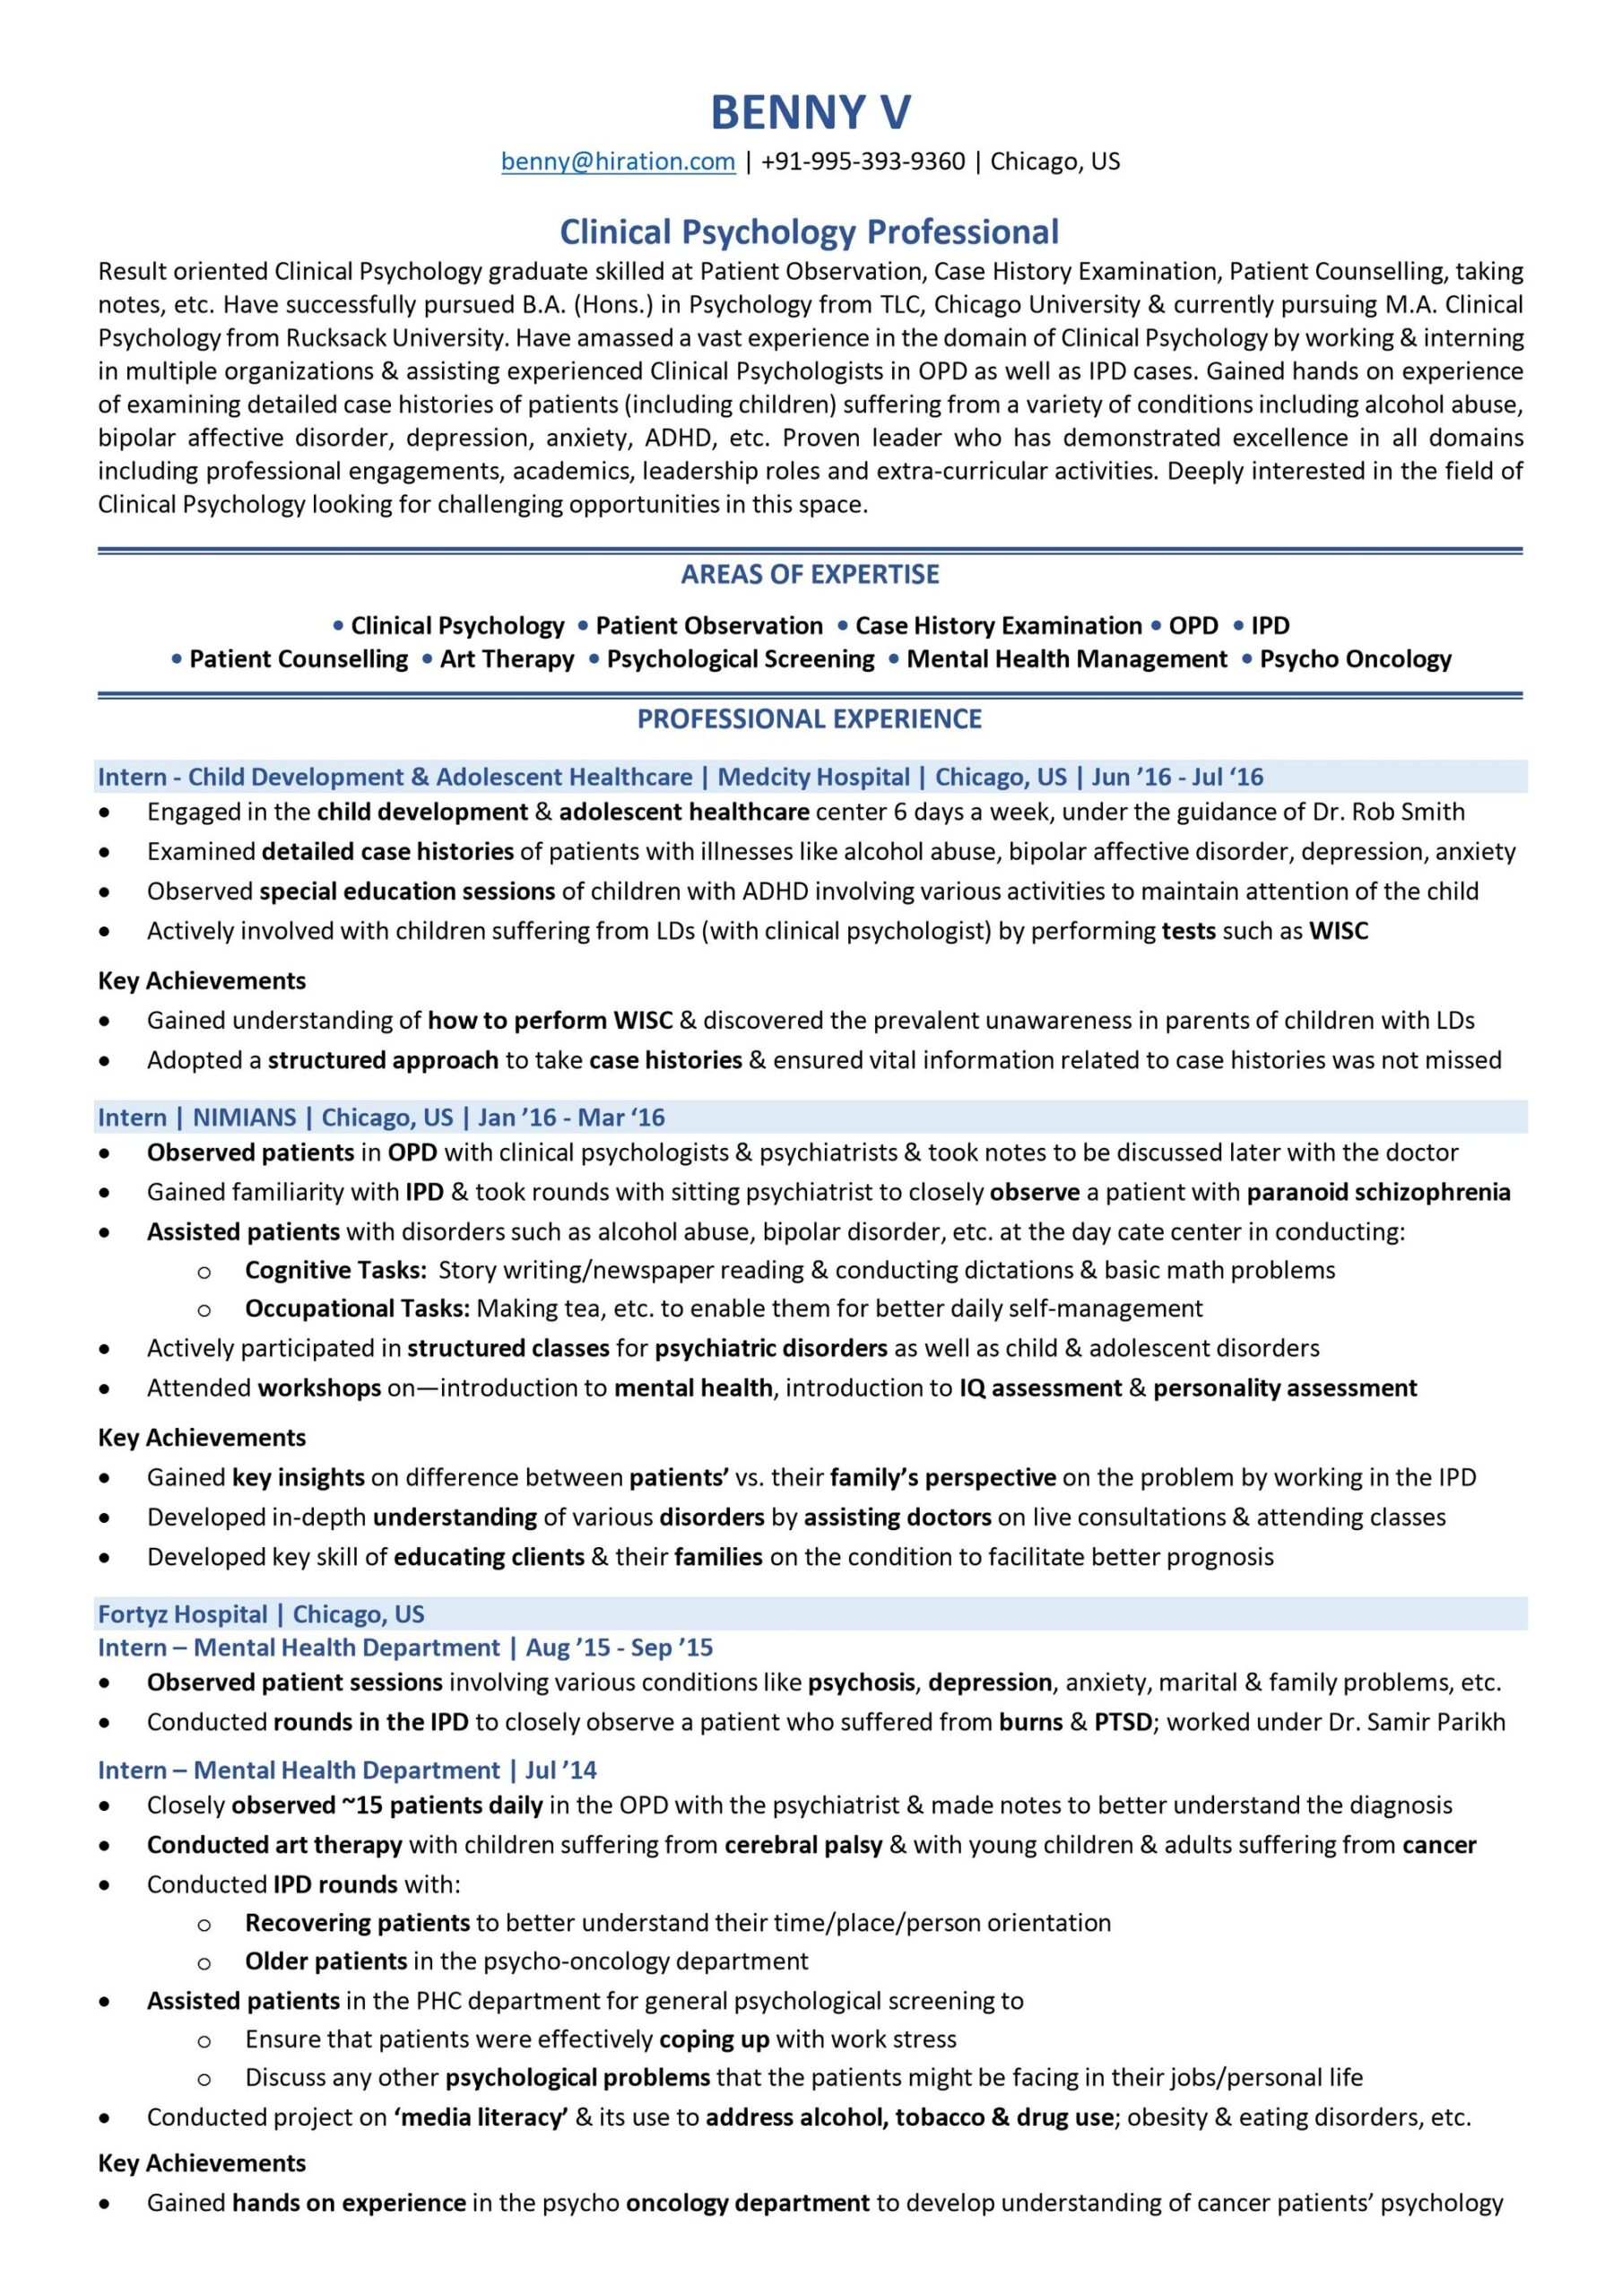 scholarship resume guide with examples samples objective for application sample template Resume Resume Objective For Scholarship Application Sample